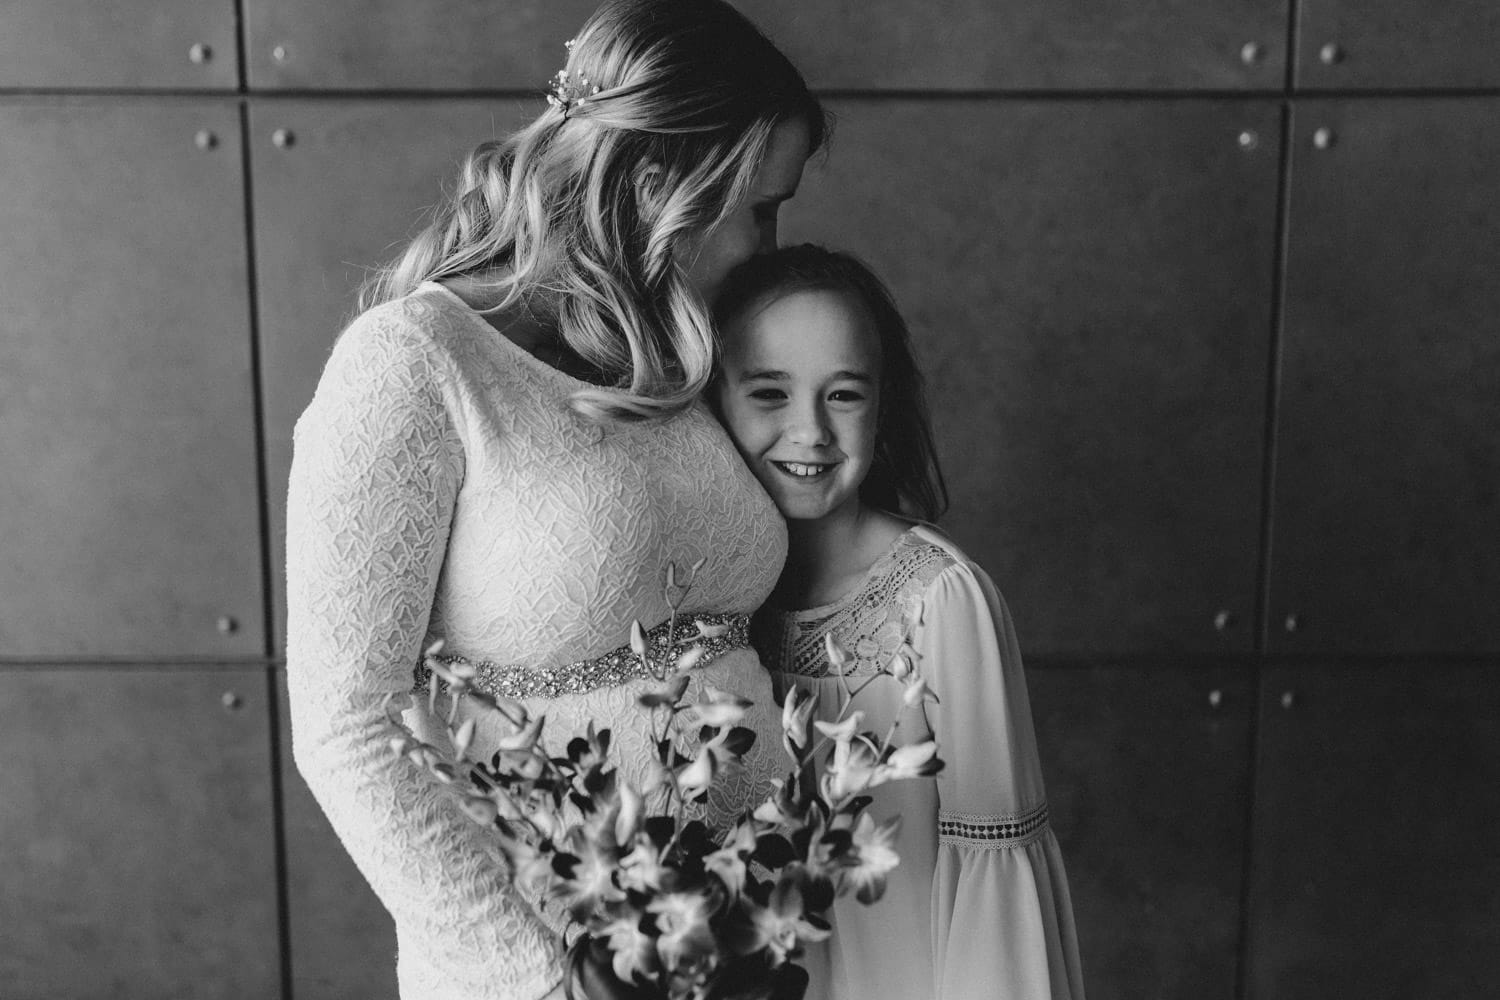 bride kisses her daughter's head on wedding day